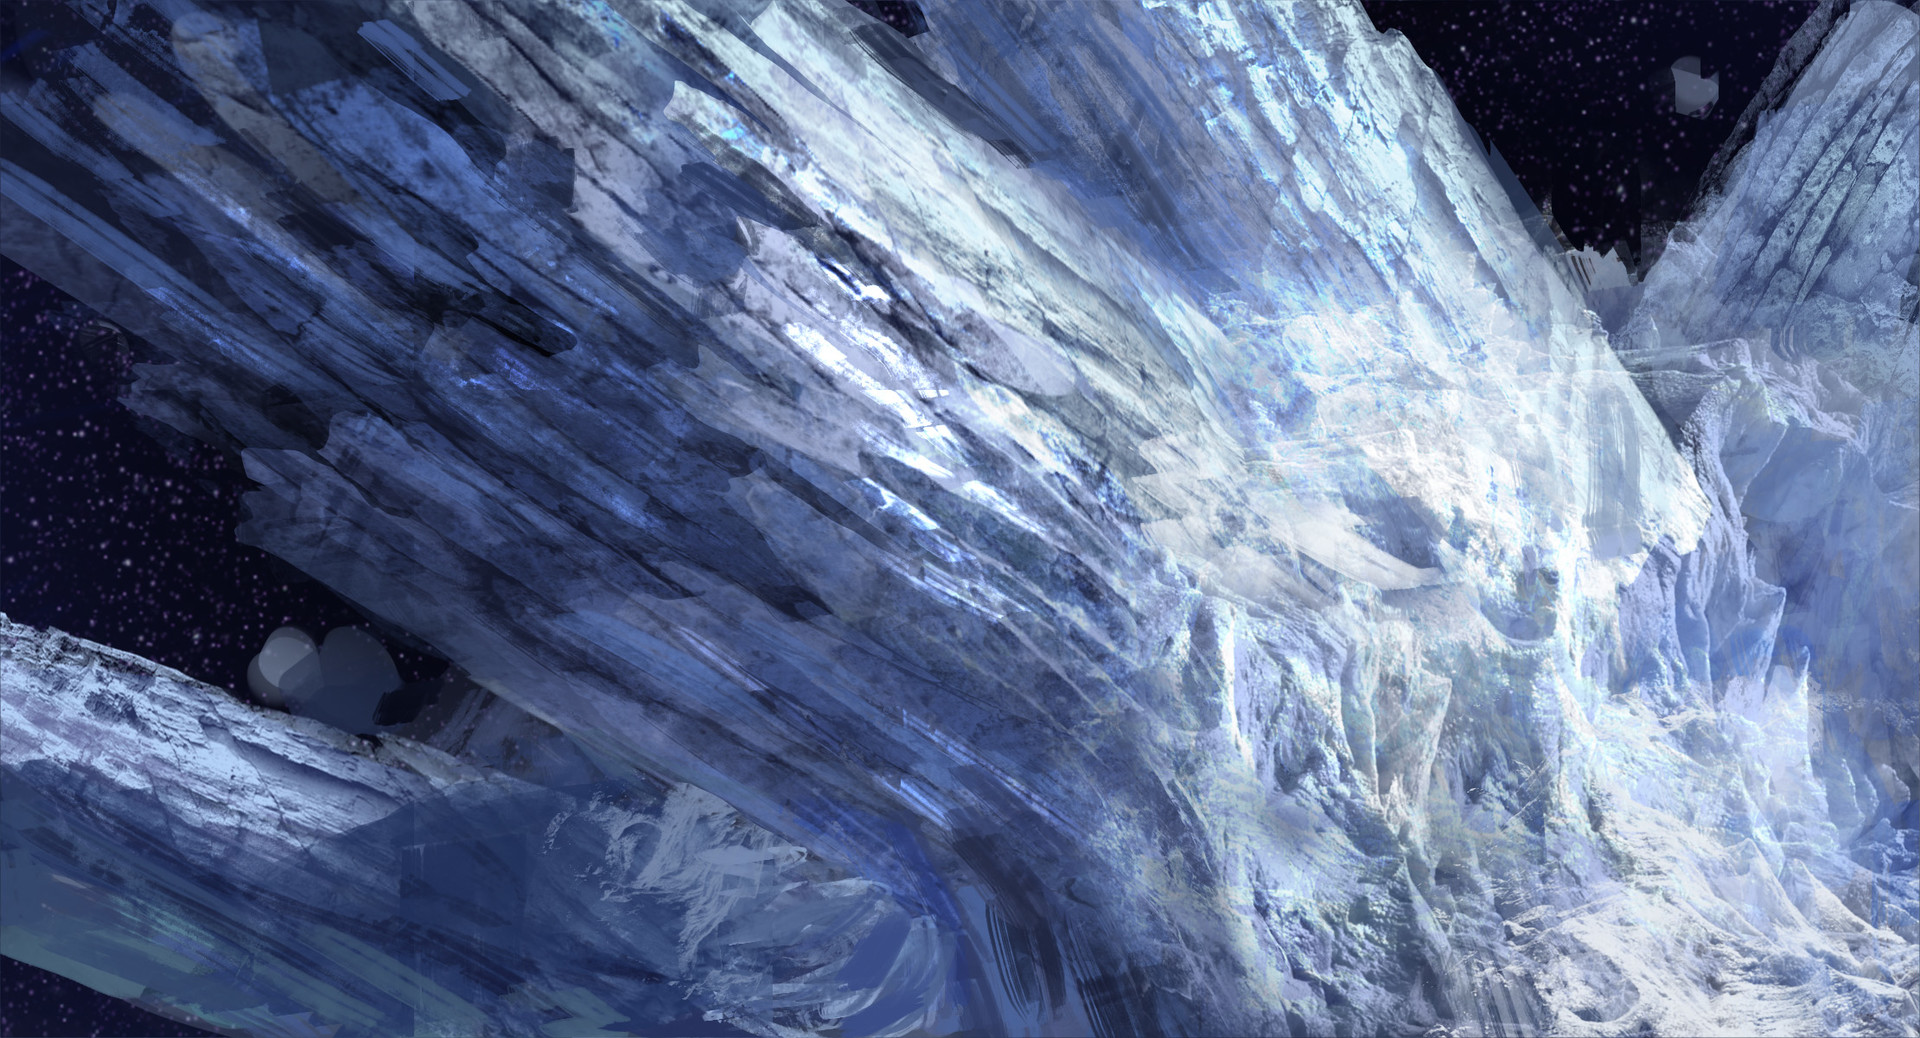 --but not fast enough! The spinning ice and rock still bears down on us, its dumbbell-shape sweeping closer with every tumble. Captain times it-- launches us straight toward the comet, following the tumbling form into the tail but—